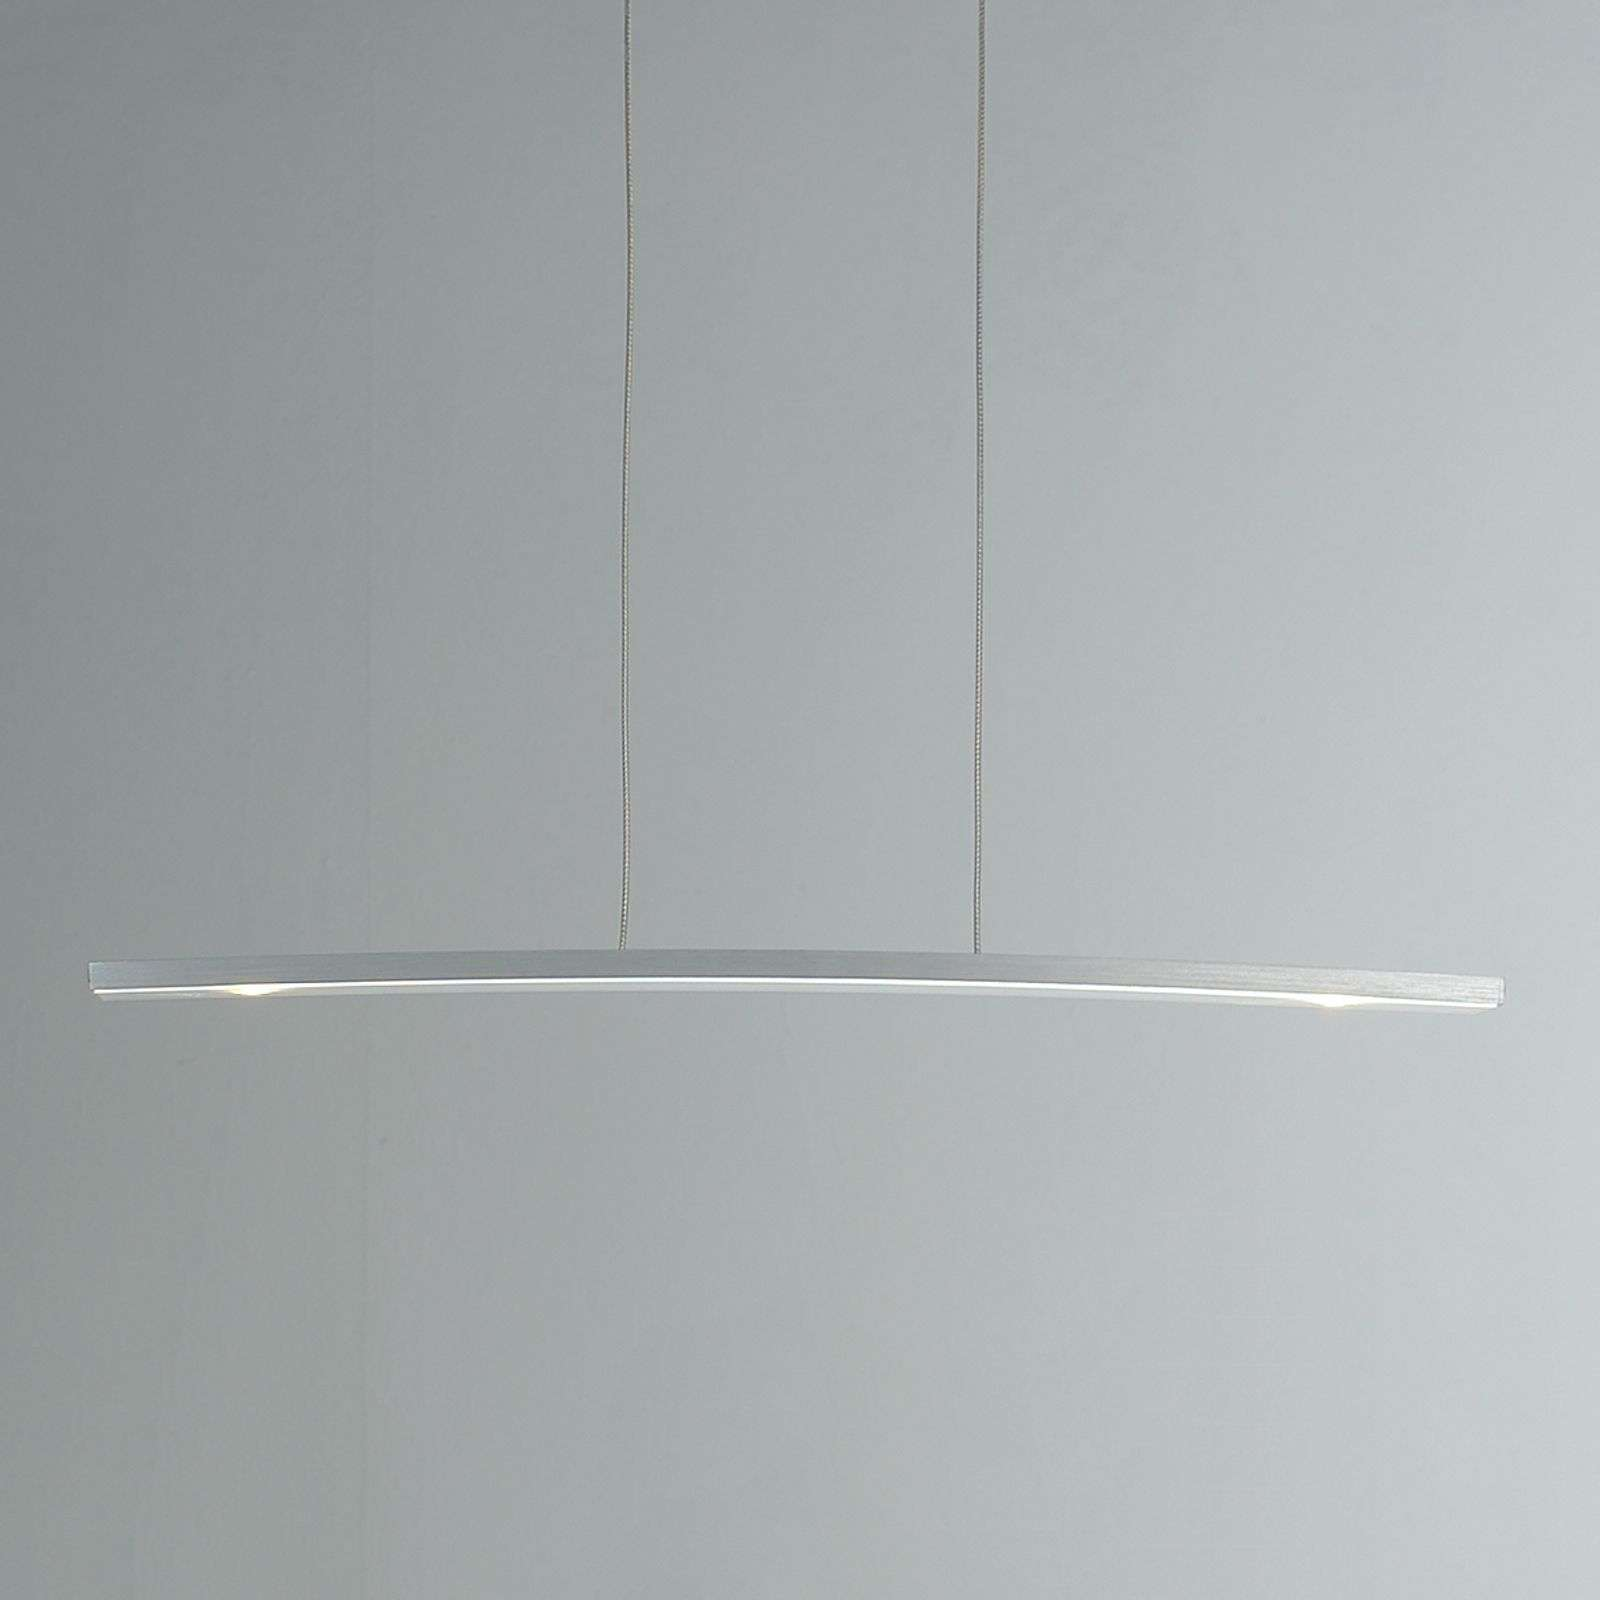 Suspension LED More sobre et moderne